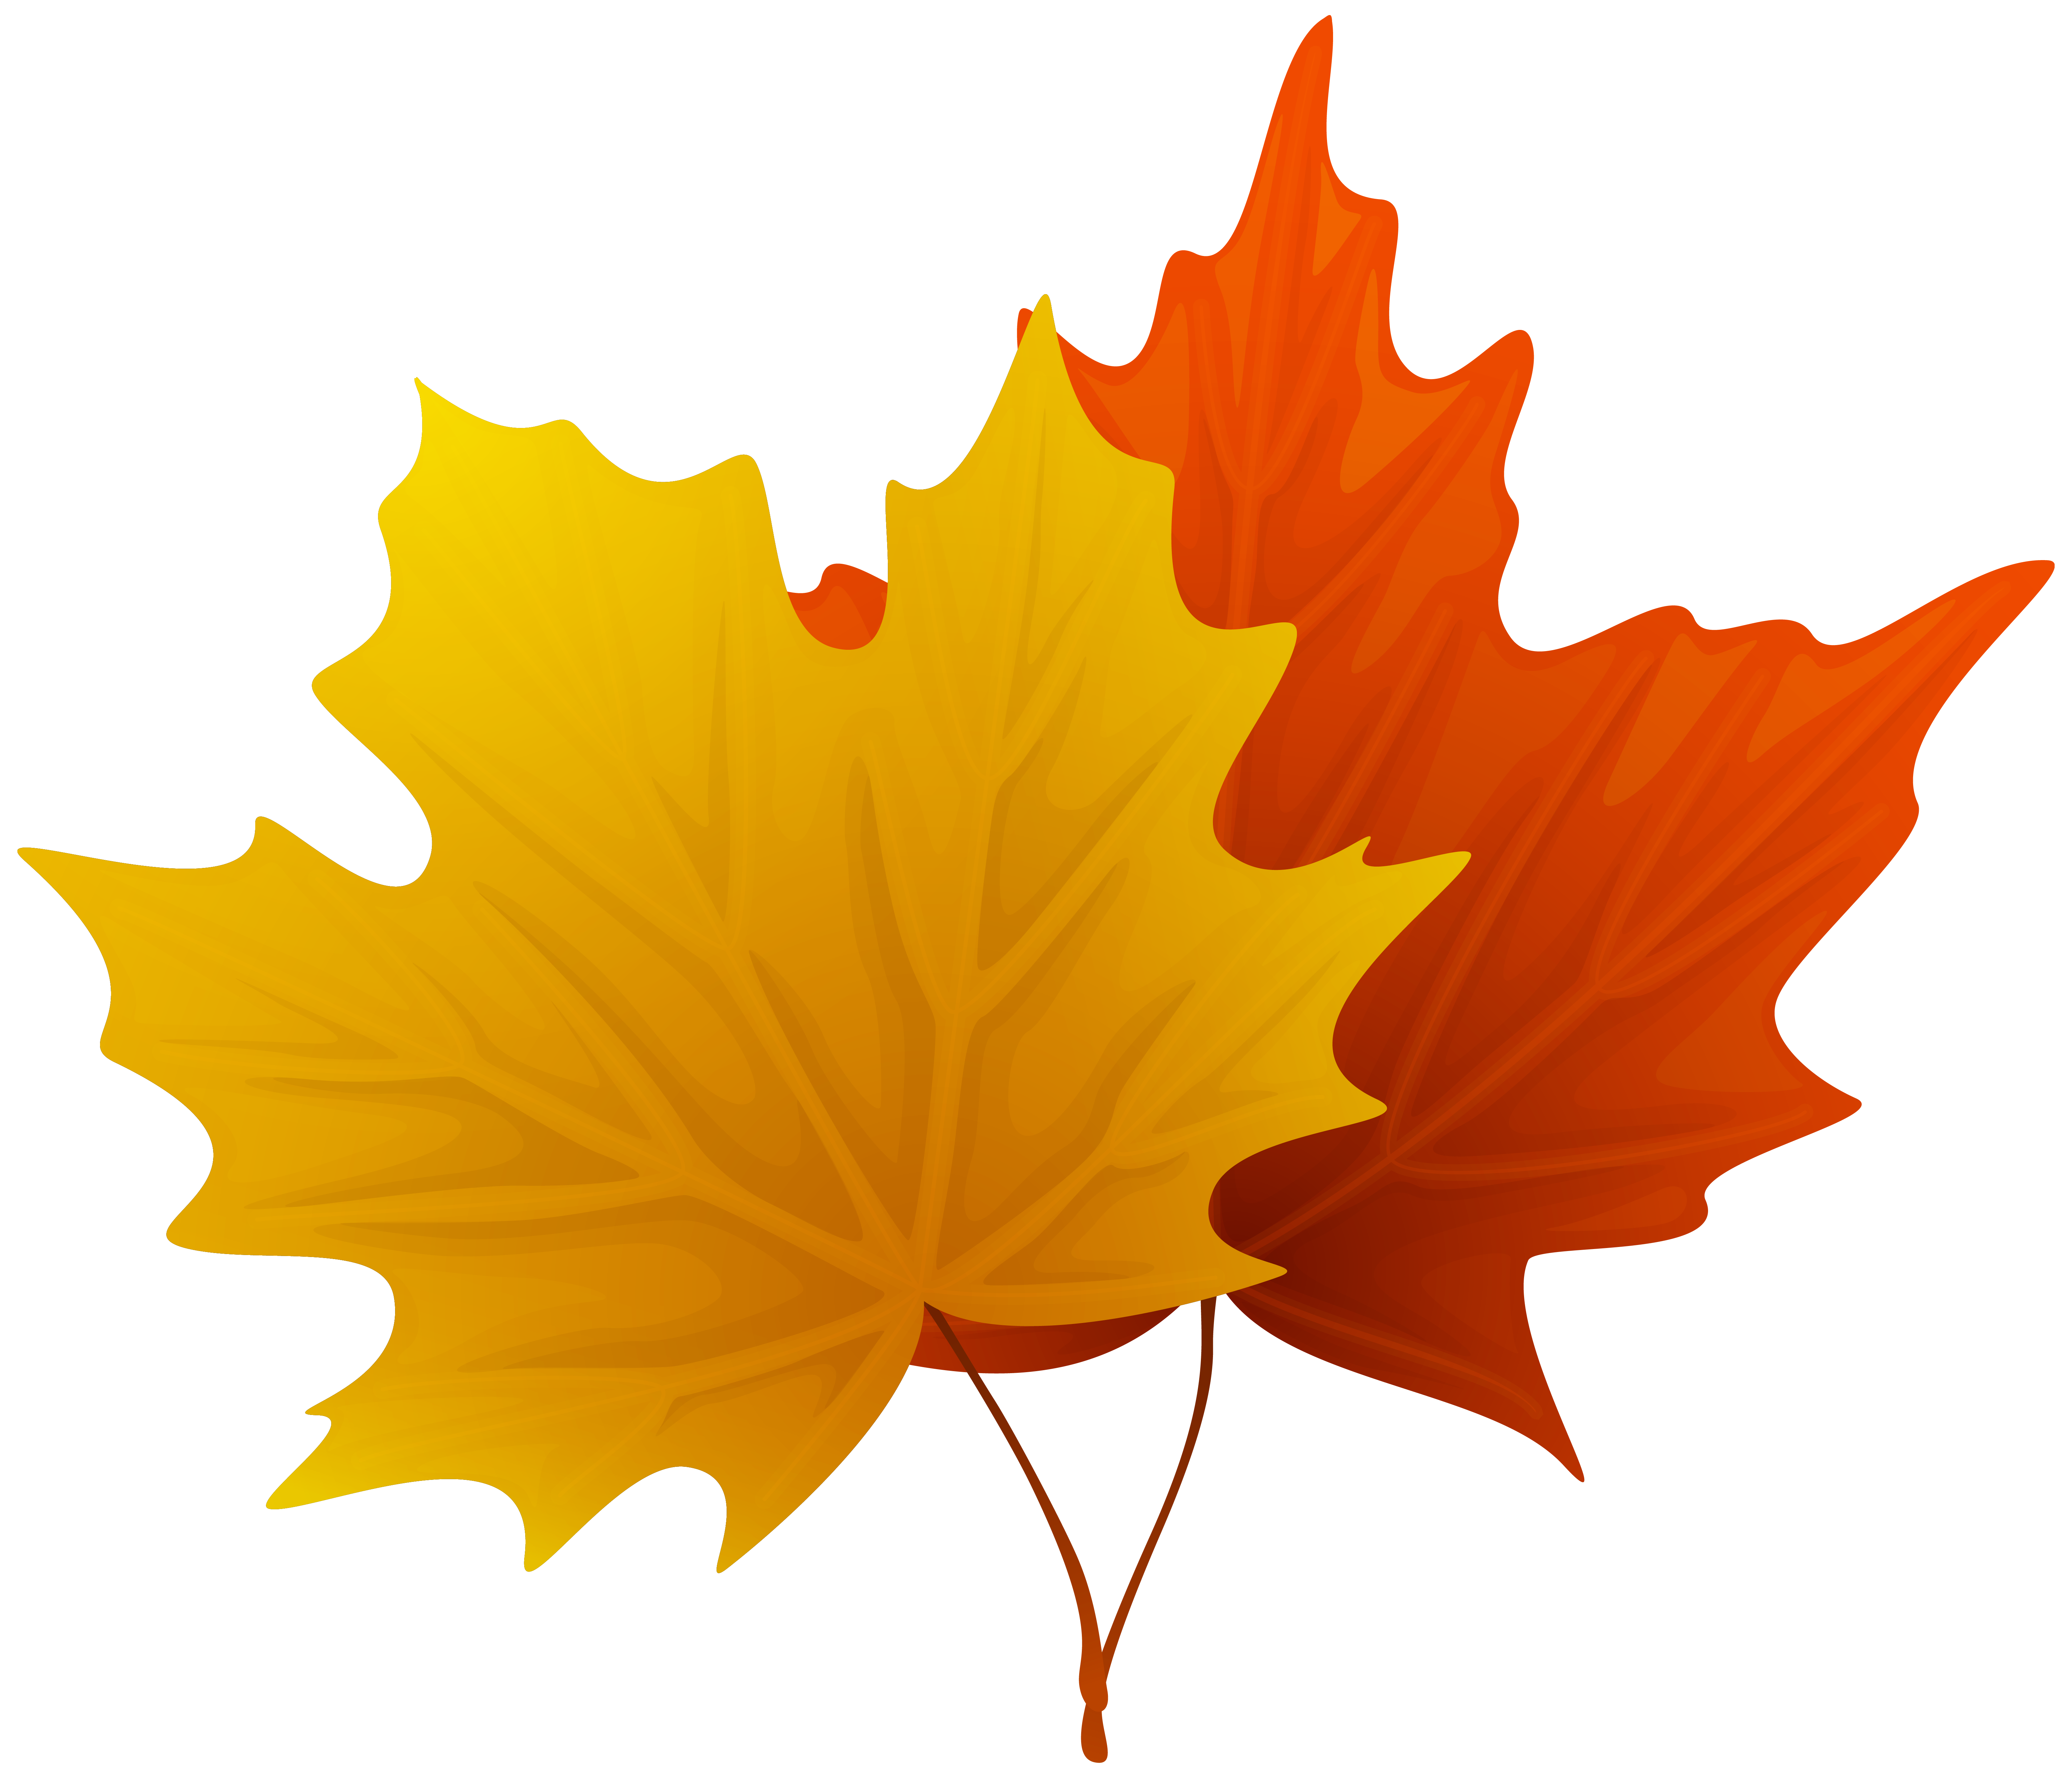 Acer leaves clipart - Clipground